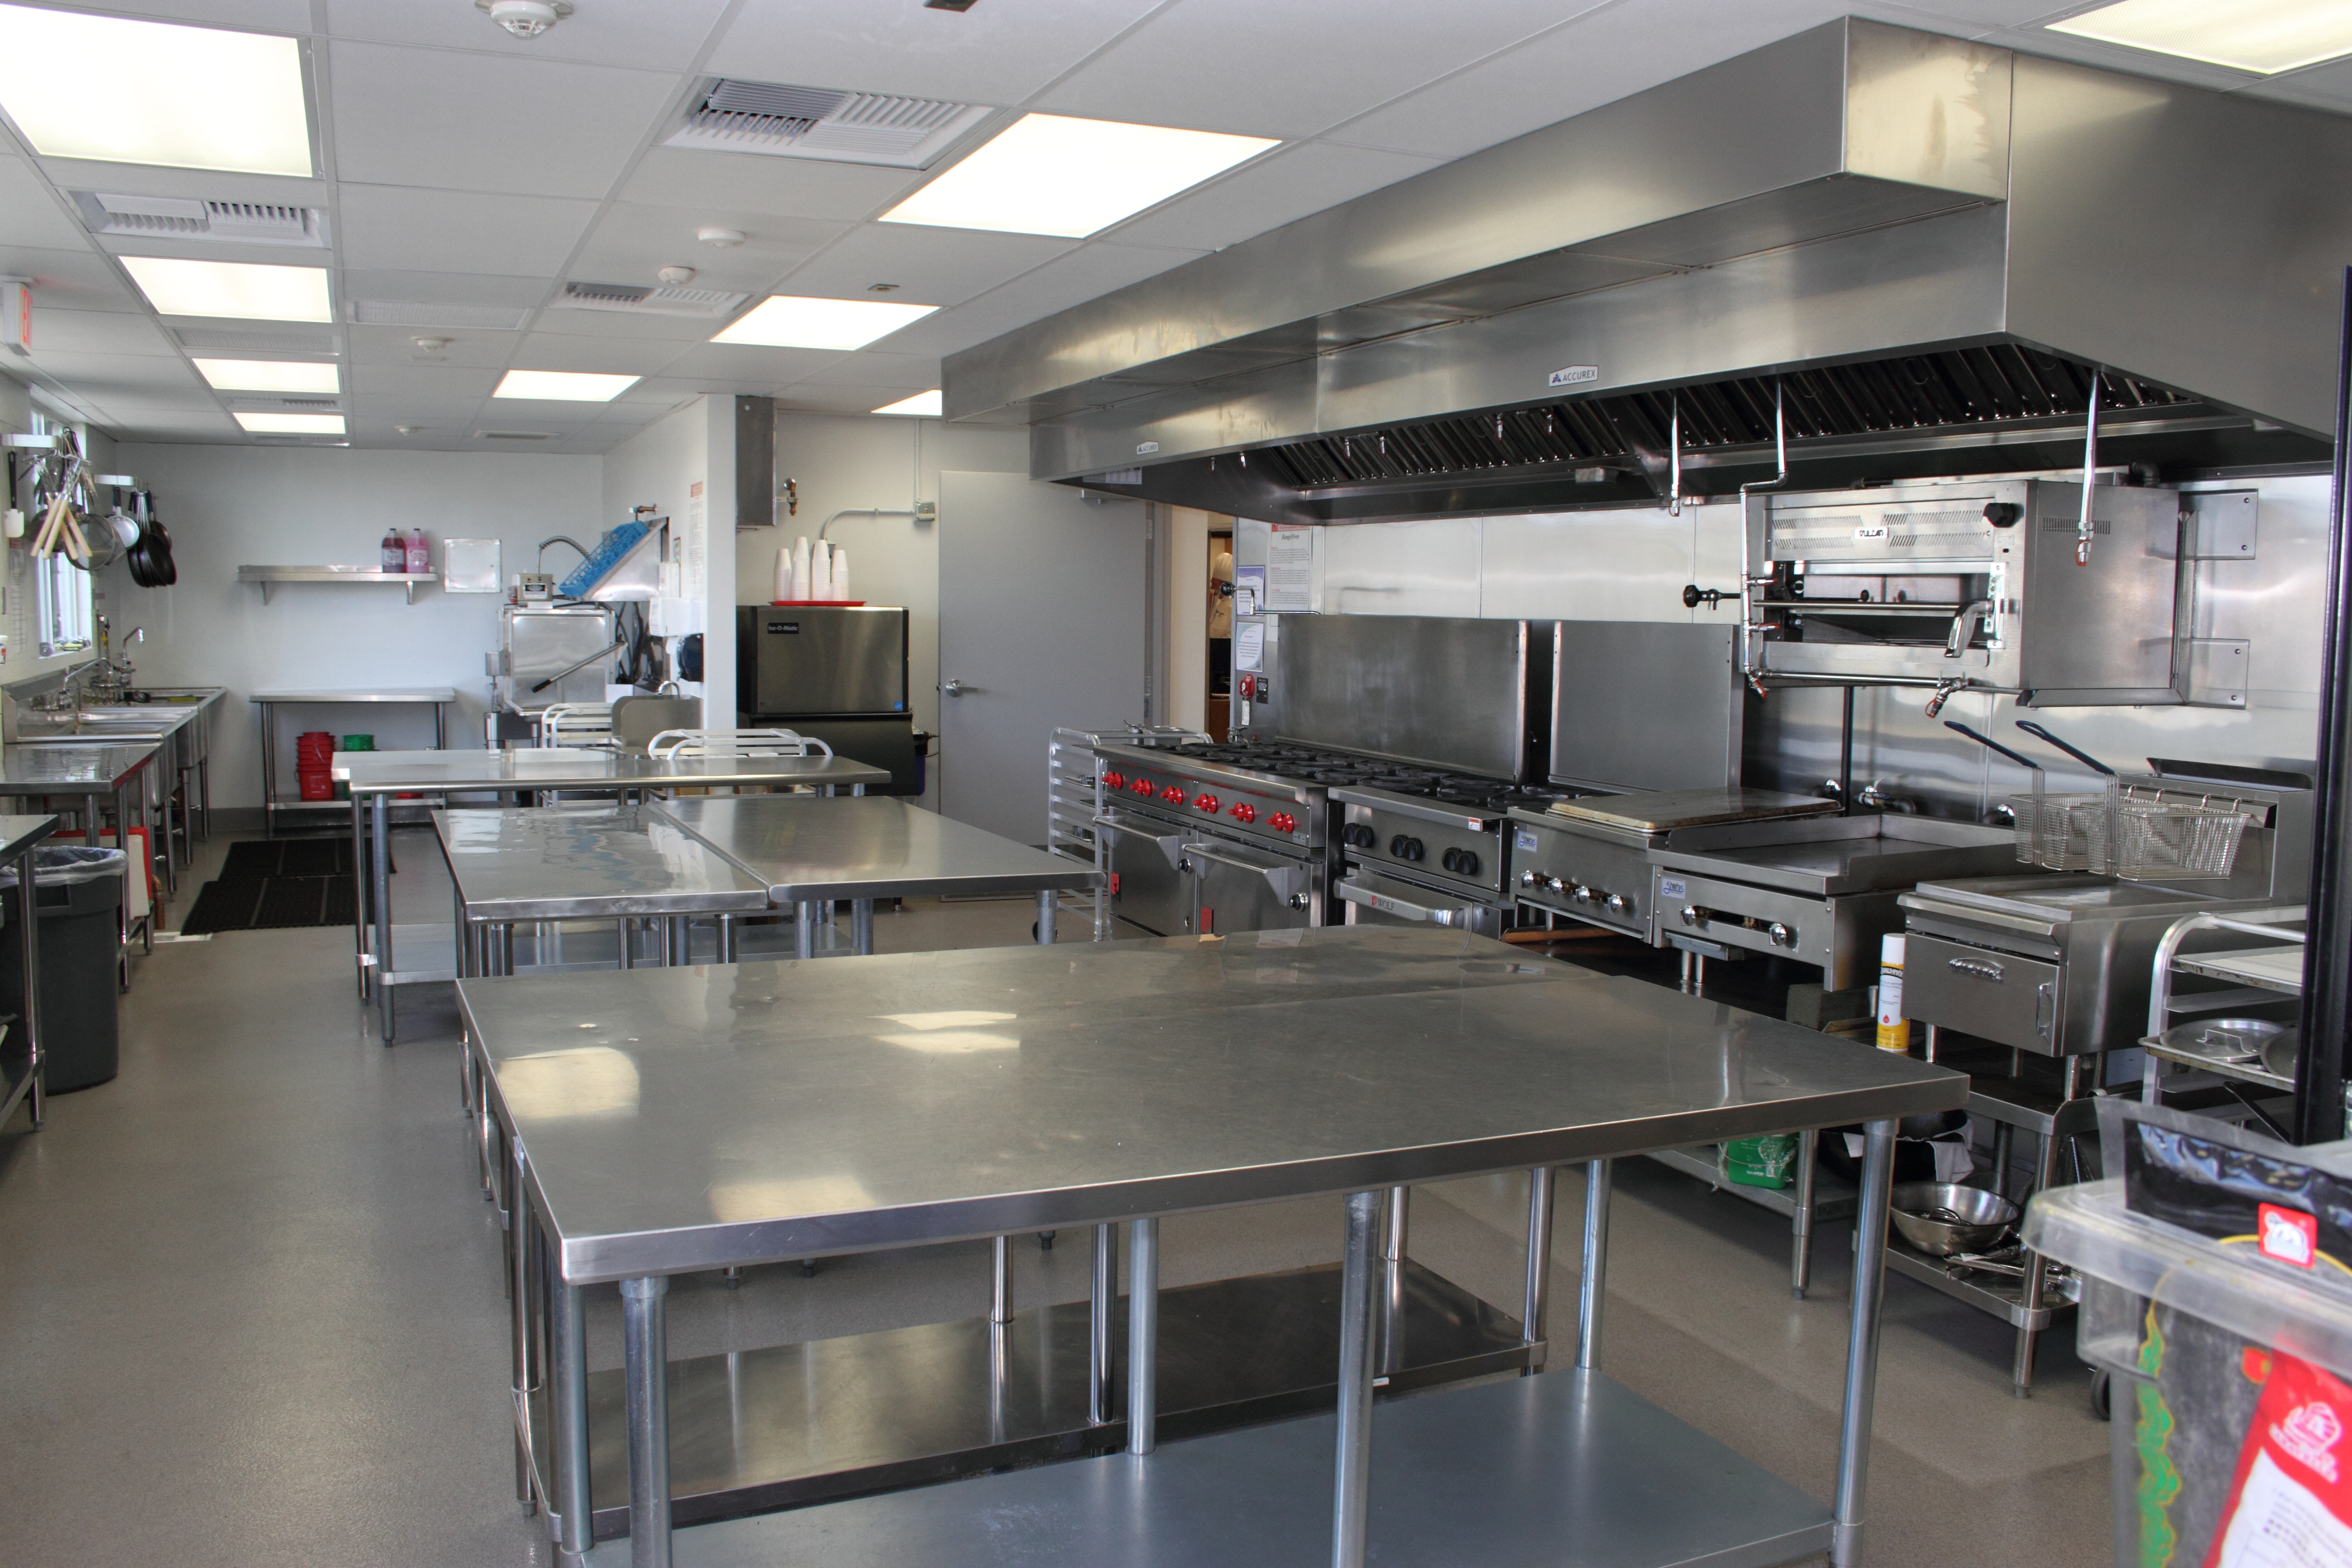 Used Commercial Stainless Kitchen Appliances Near Me